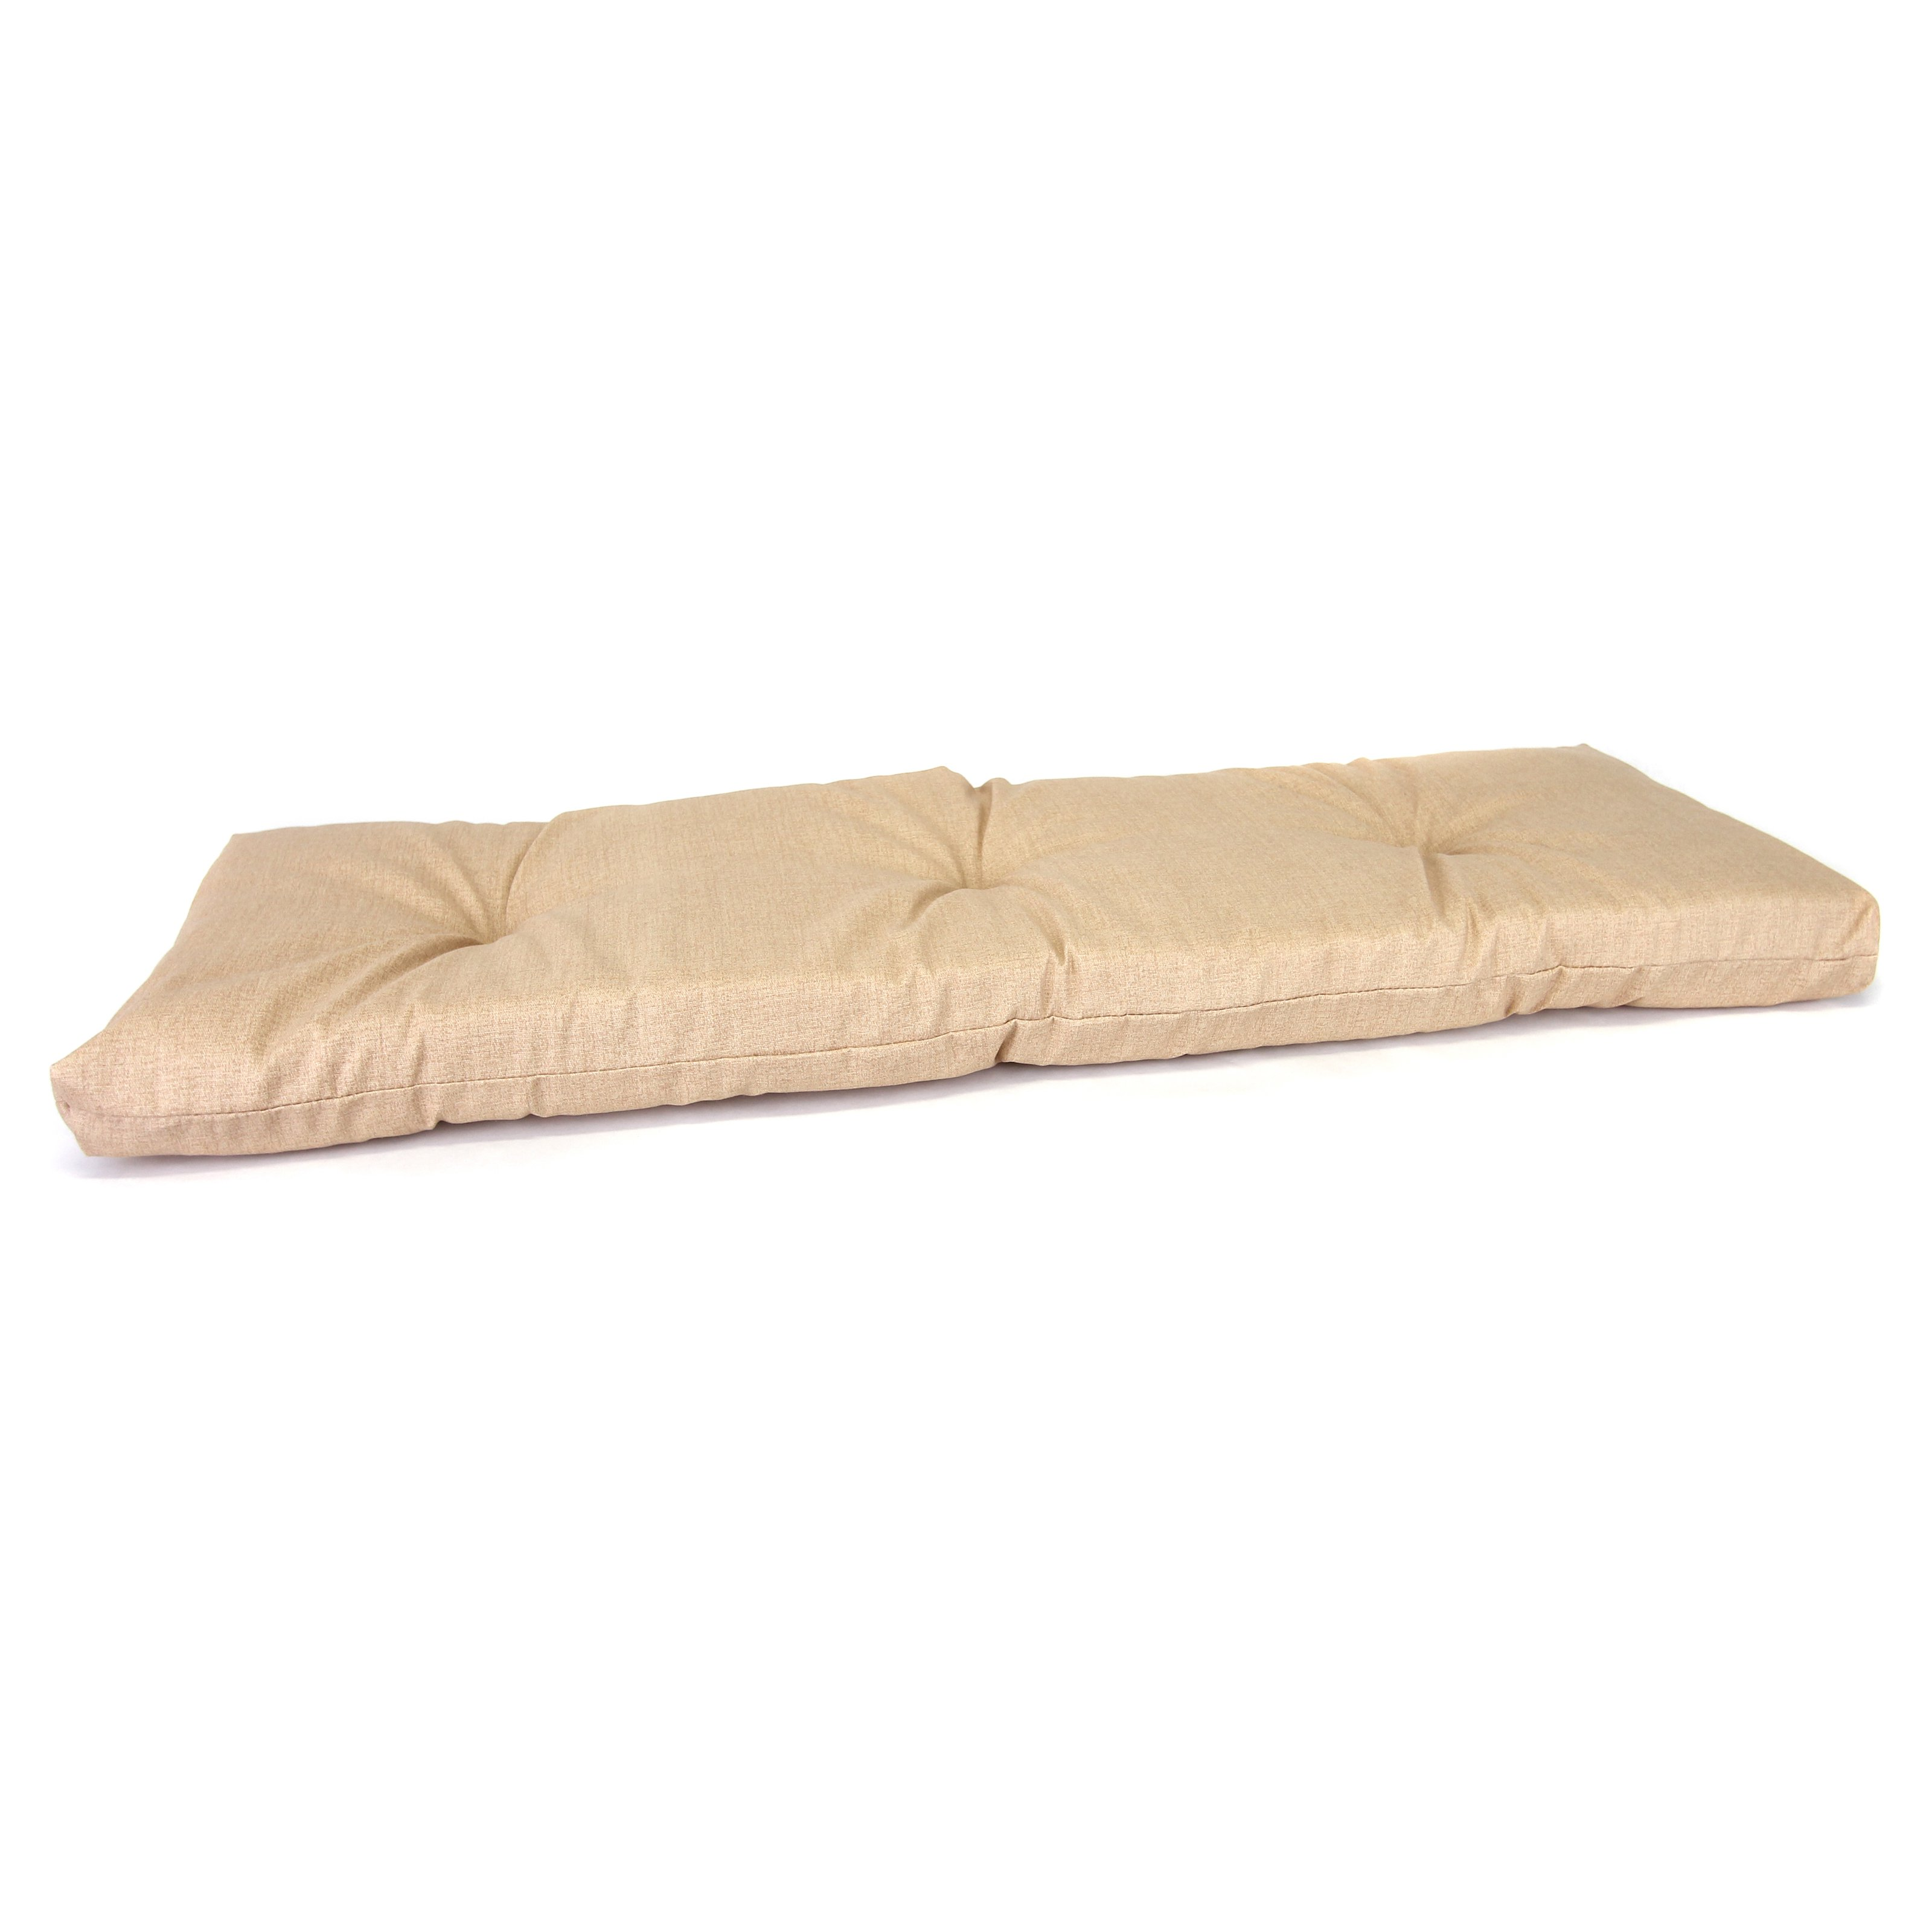 Jordan Manufacturing Storage Bench Cushion - 45L x 16W x 2H in.